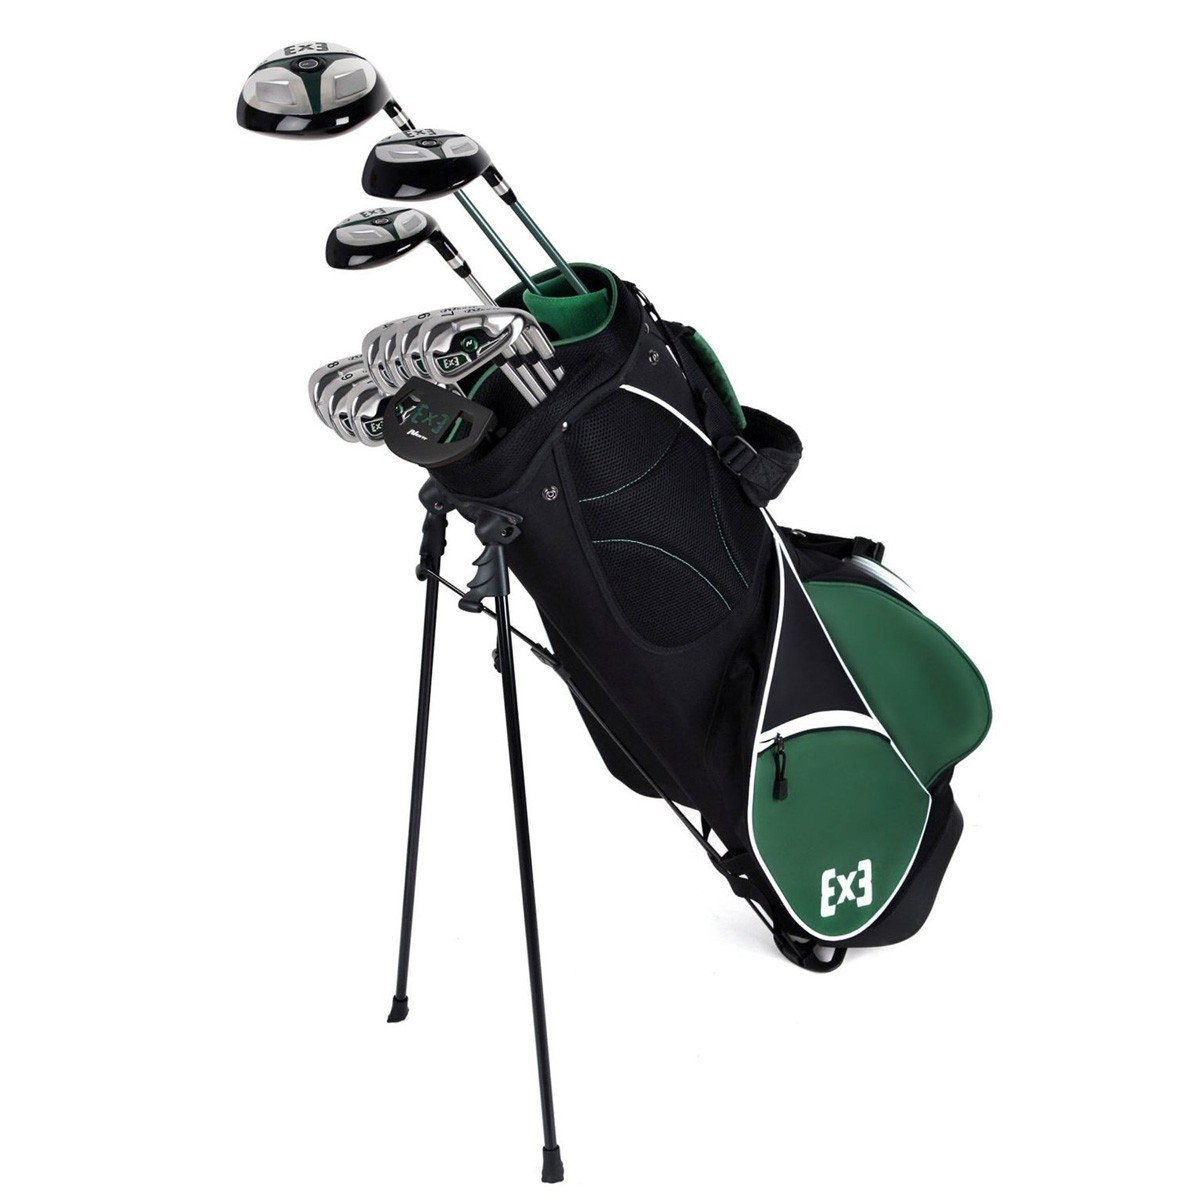 Nextt Complete Golf Club Sets